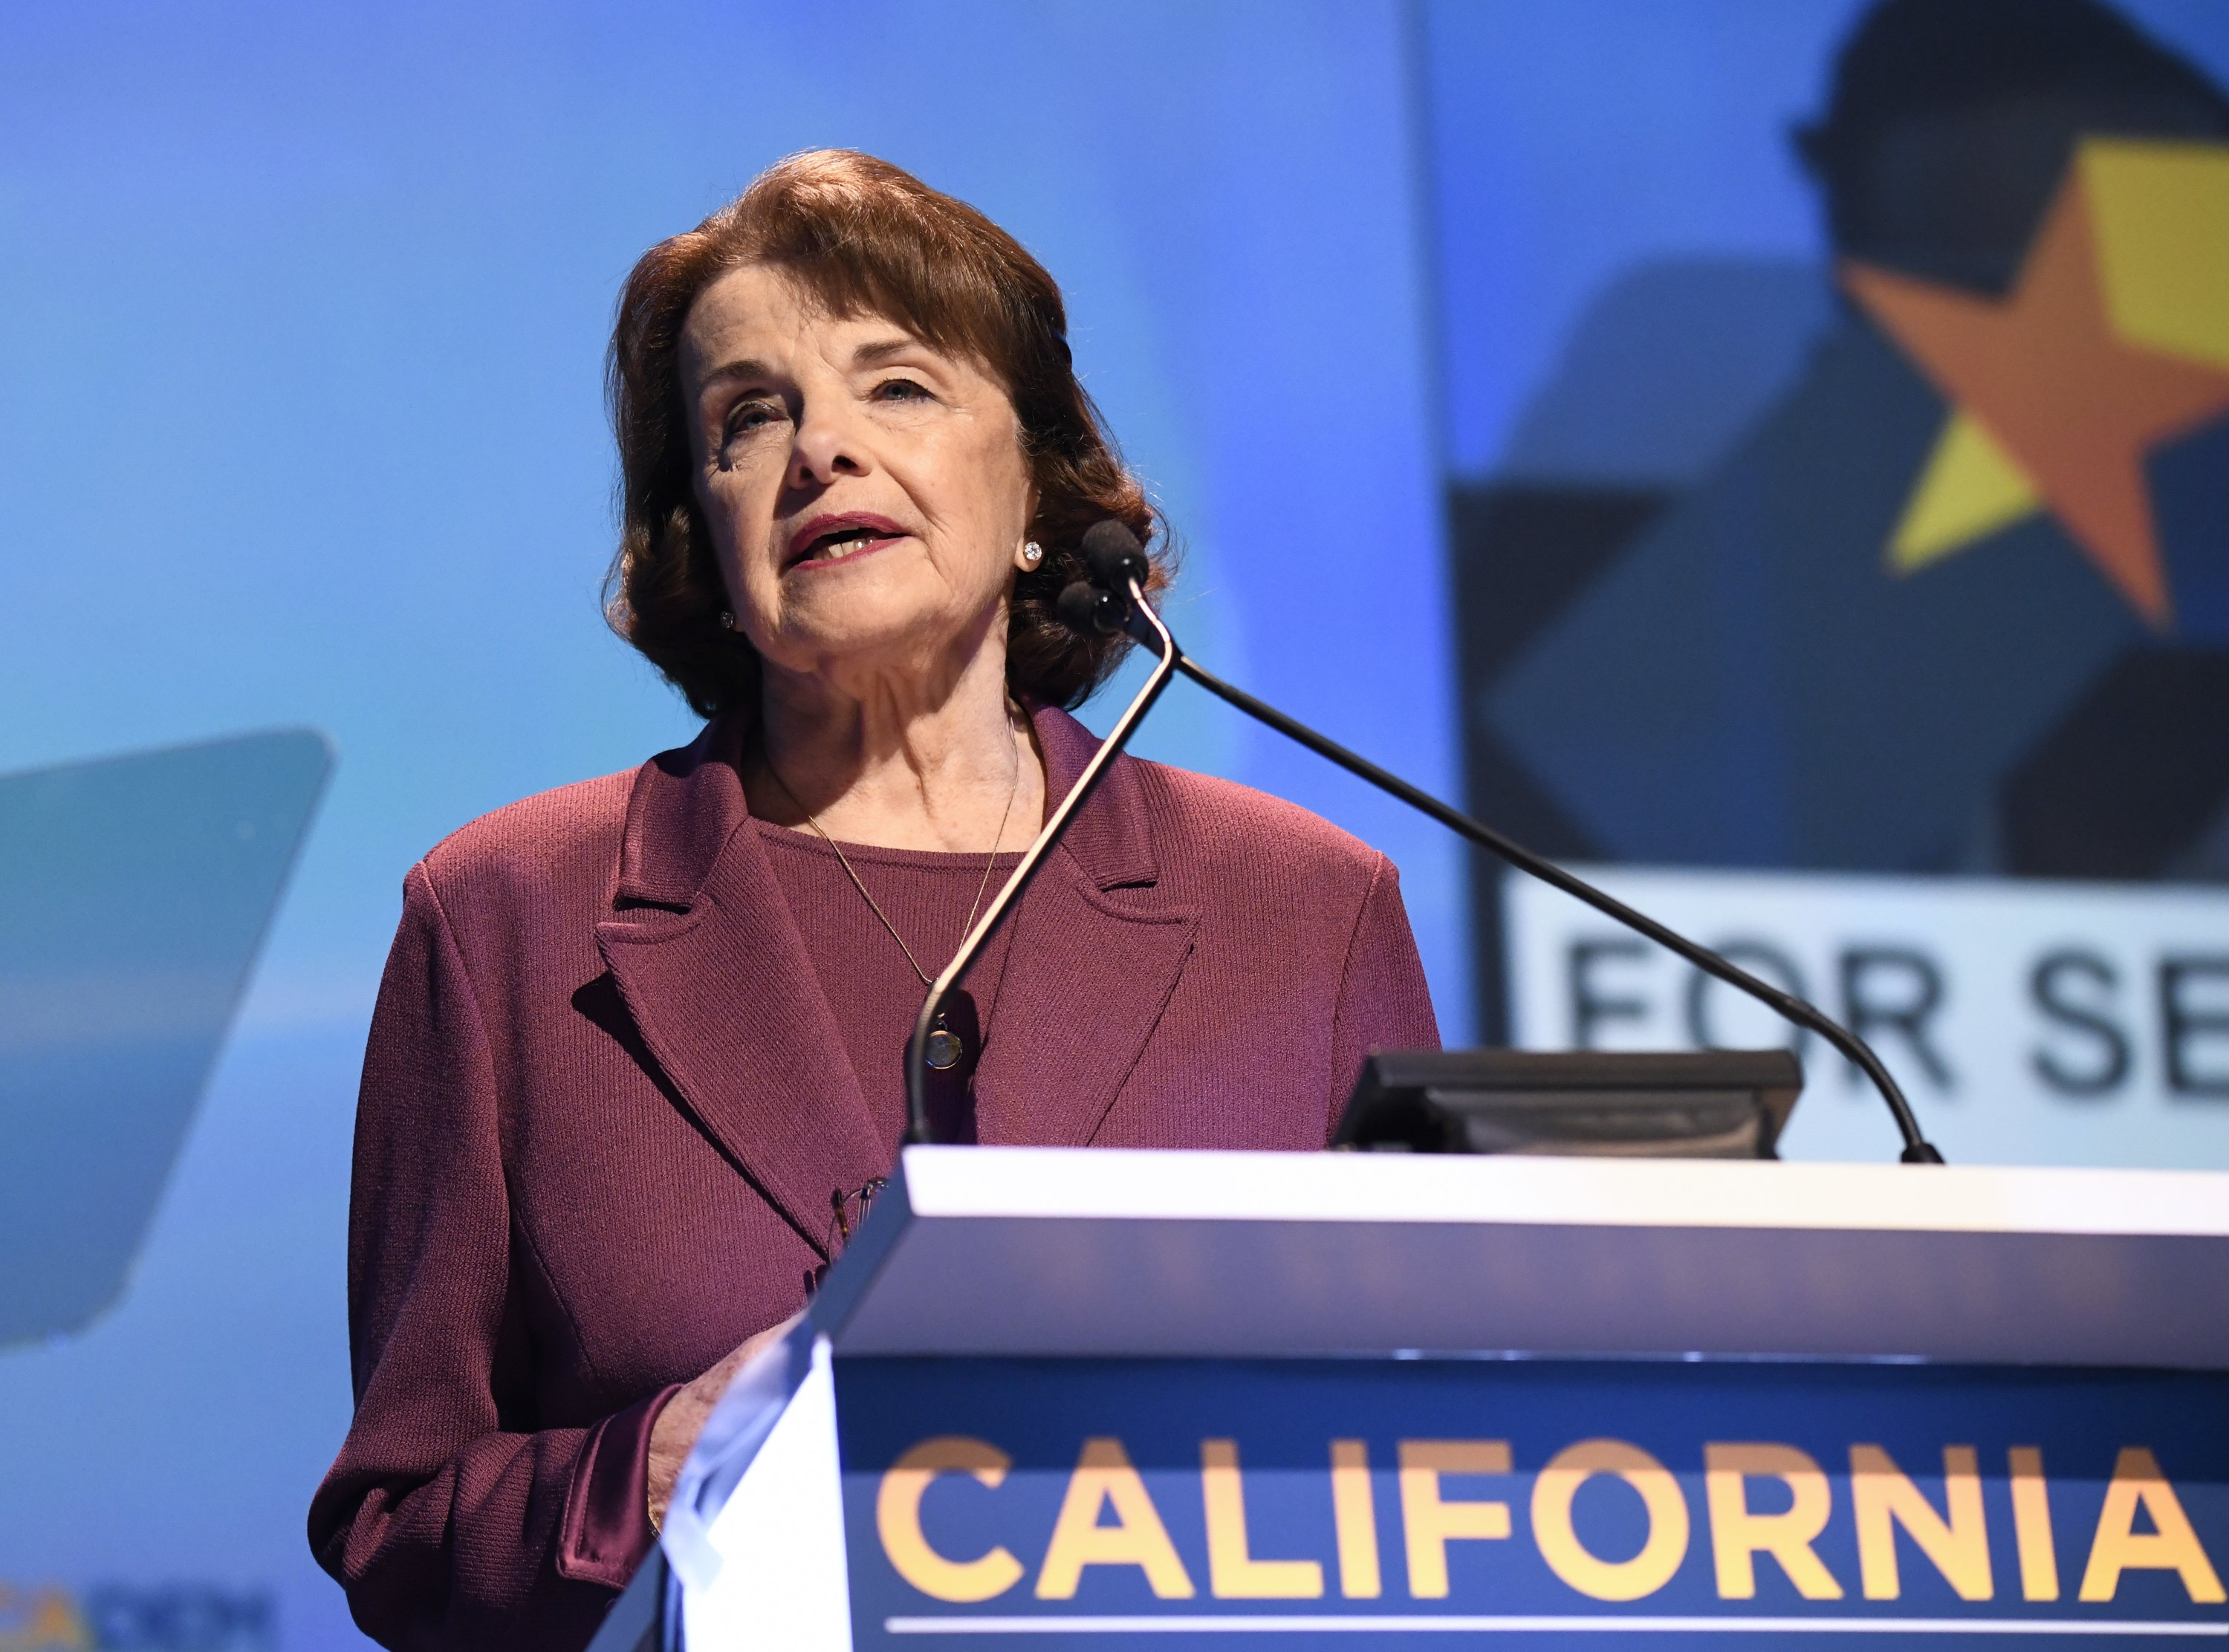 California Democratic Party won't endorse Dianne Feinstein thumbnail